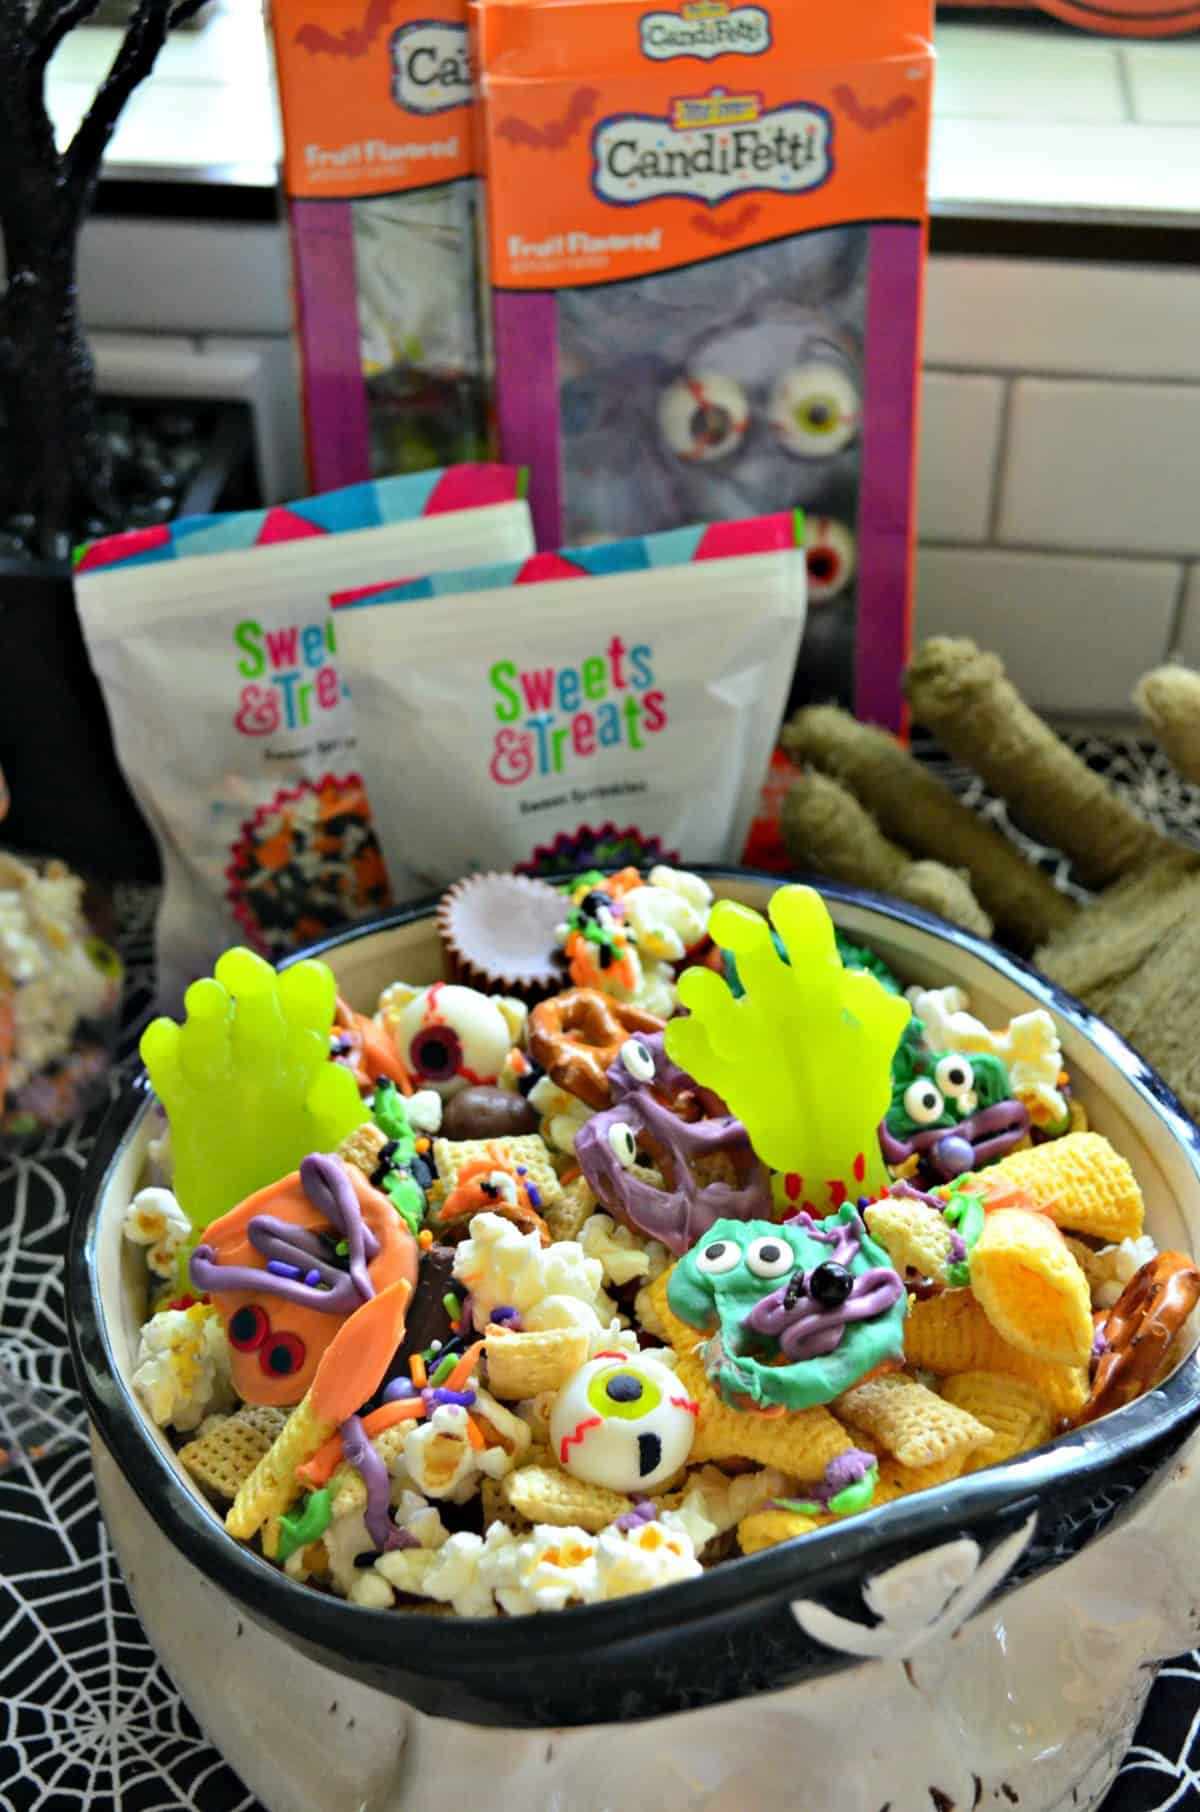 skull bowl of snack mix with colorful chocolate dipped pretzels and candy eyes in front of sweets & treats bags.